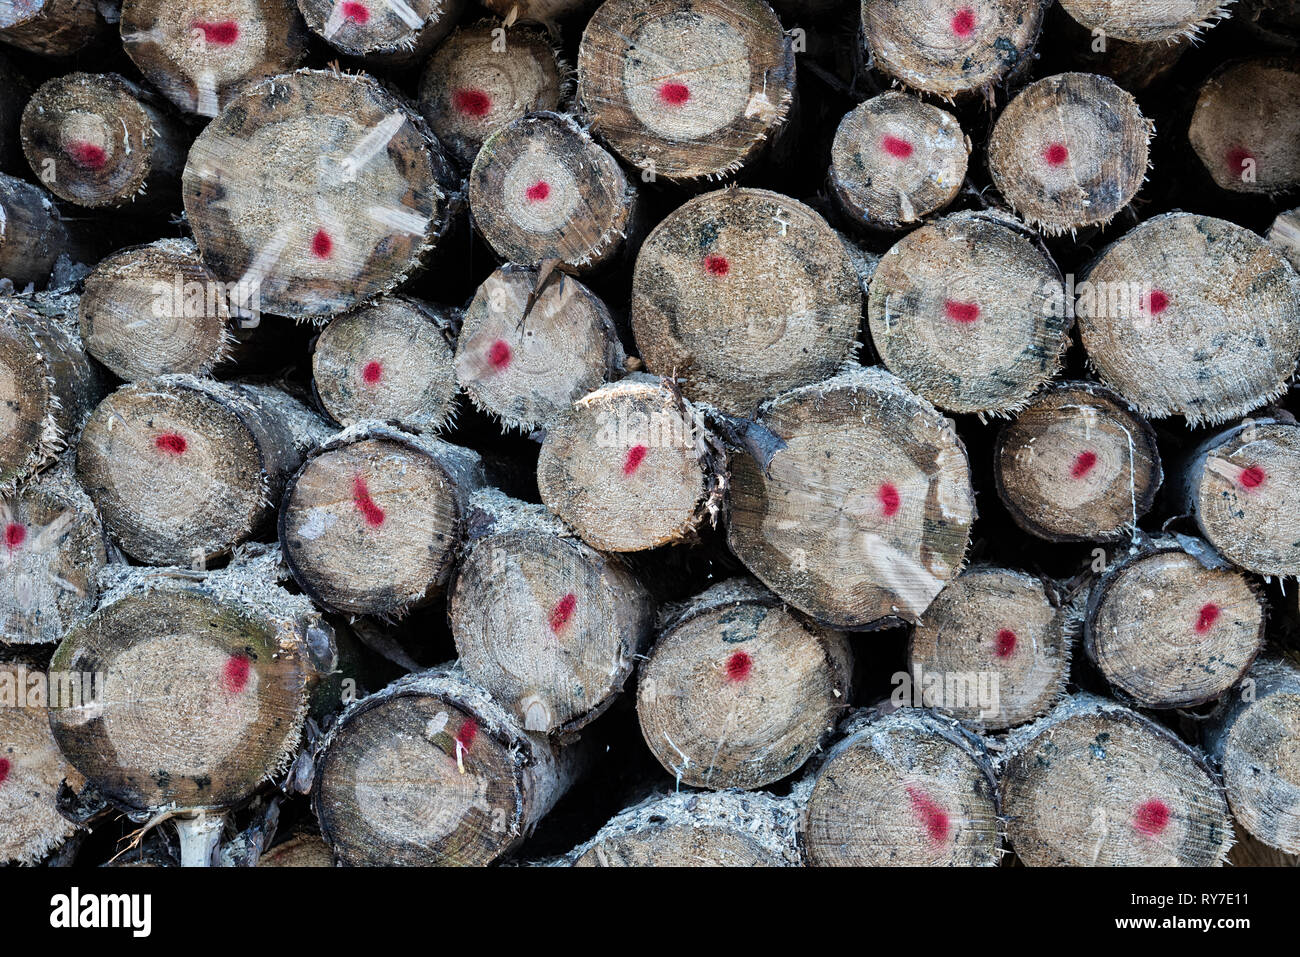 Forestry after Cyclone Friederike, near Oberweser, Weser Uplands, Weserbergland, Hesse, Germany - Stock Image